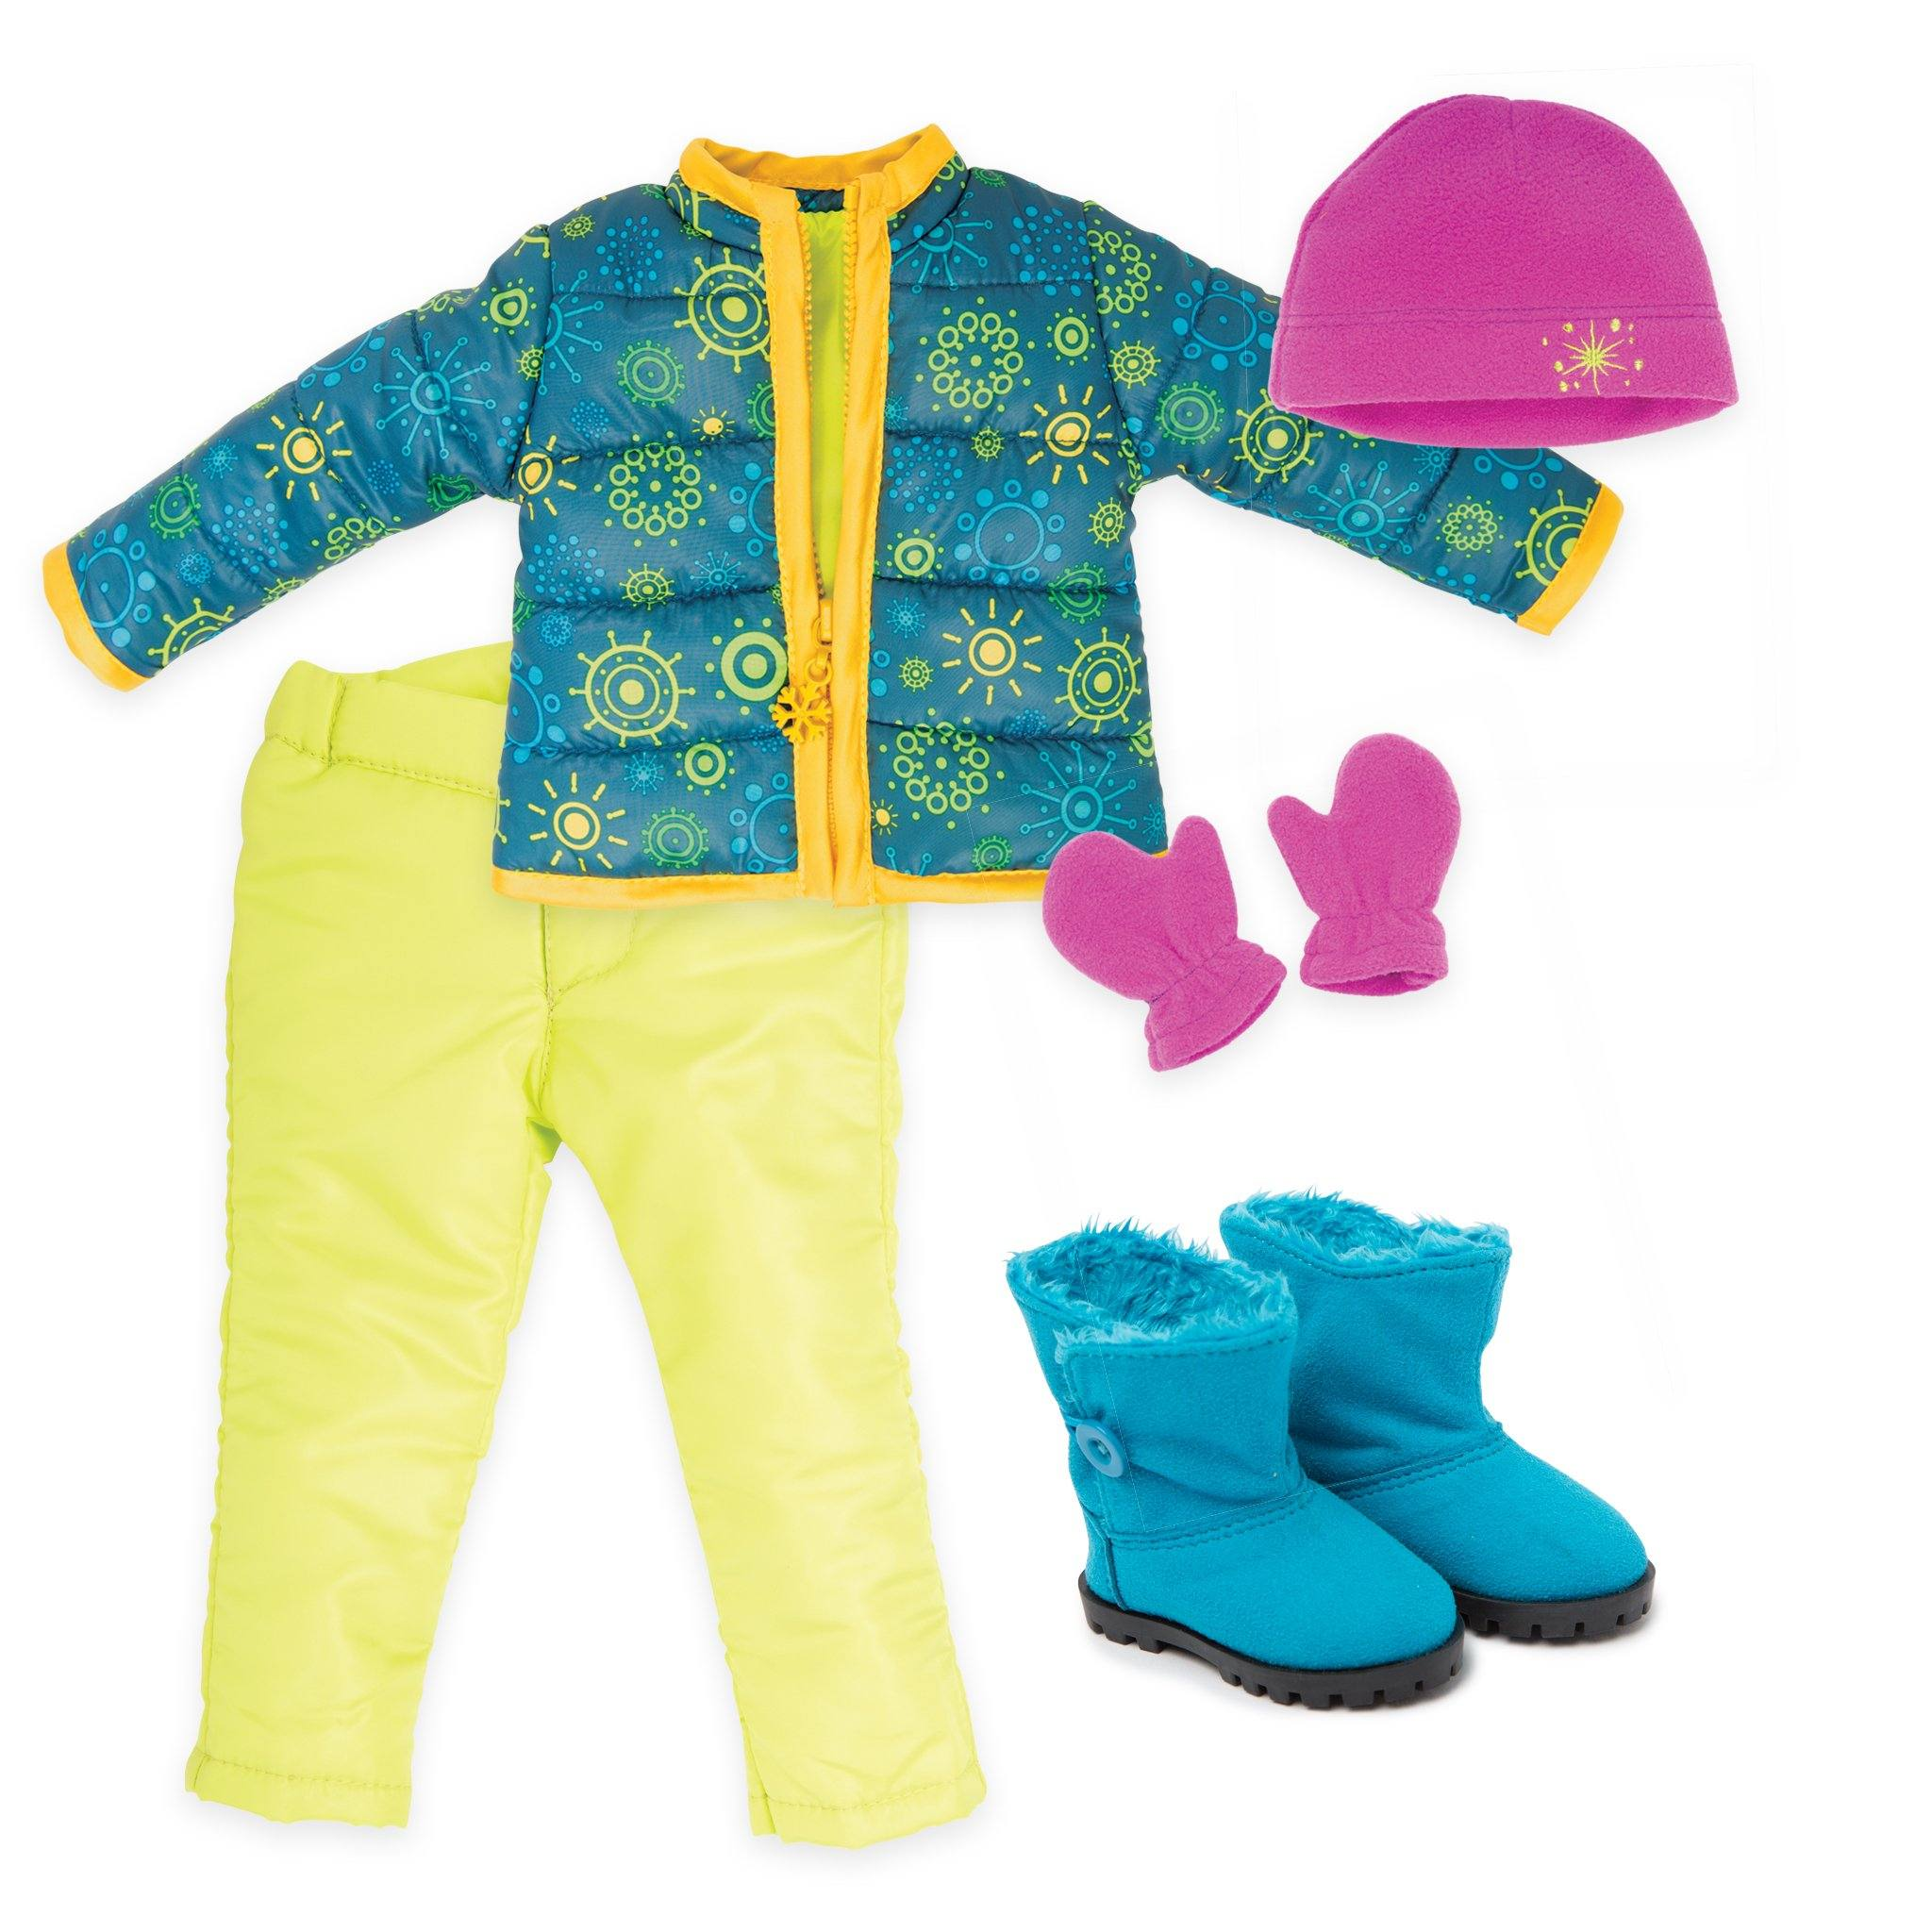 Weekend at Whistler funky snowflake patterned teal jacket with yellow trim, bright green snow pants, pink fleece toque and mittens, blue fuzzy winter boots fit all 18 inch dolls.